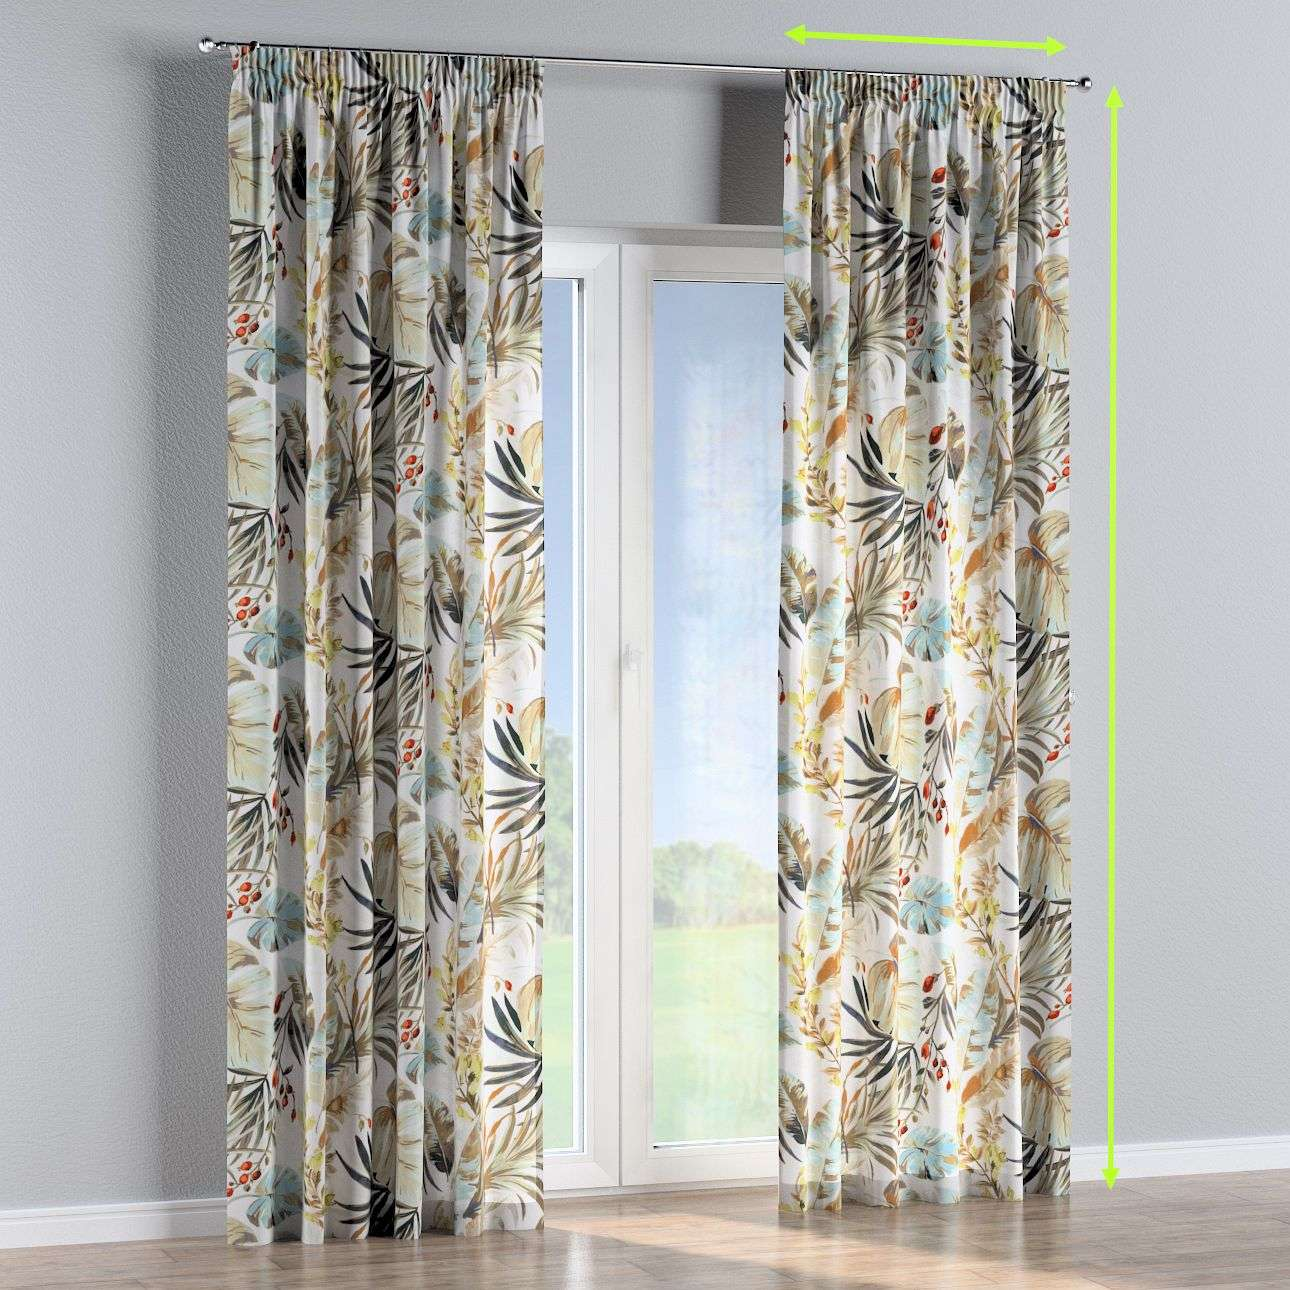 Pencil pleat curtains in collection Urban Jungle, fabric: 141-42